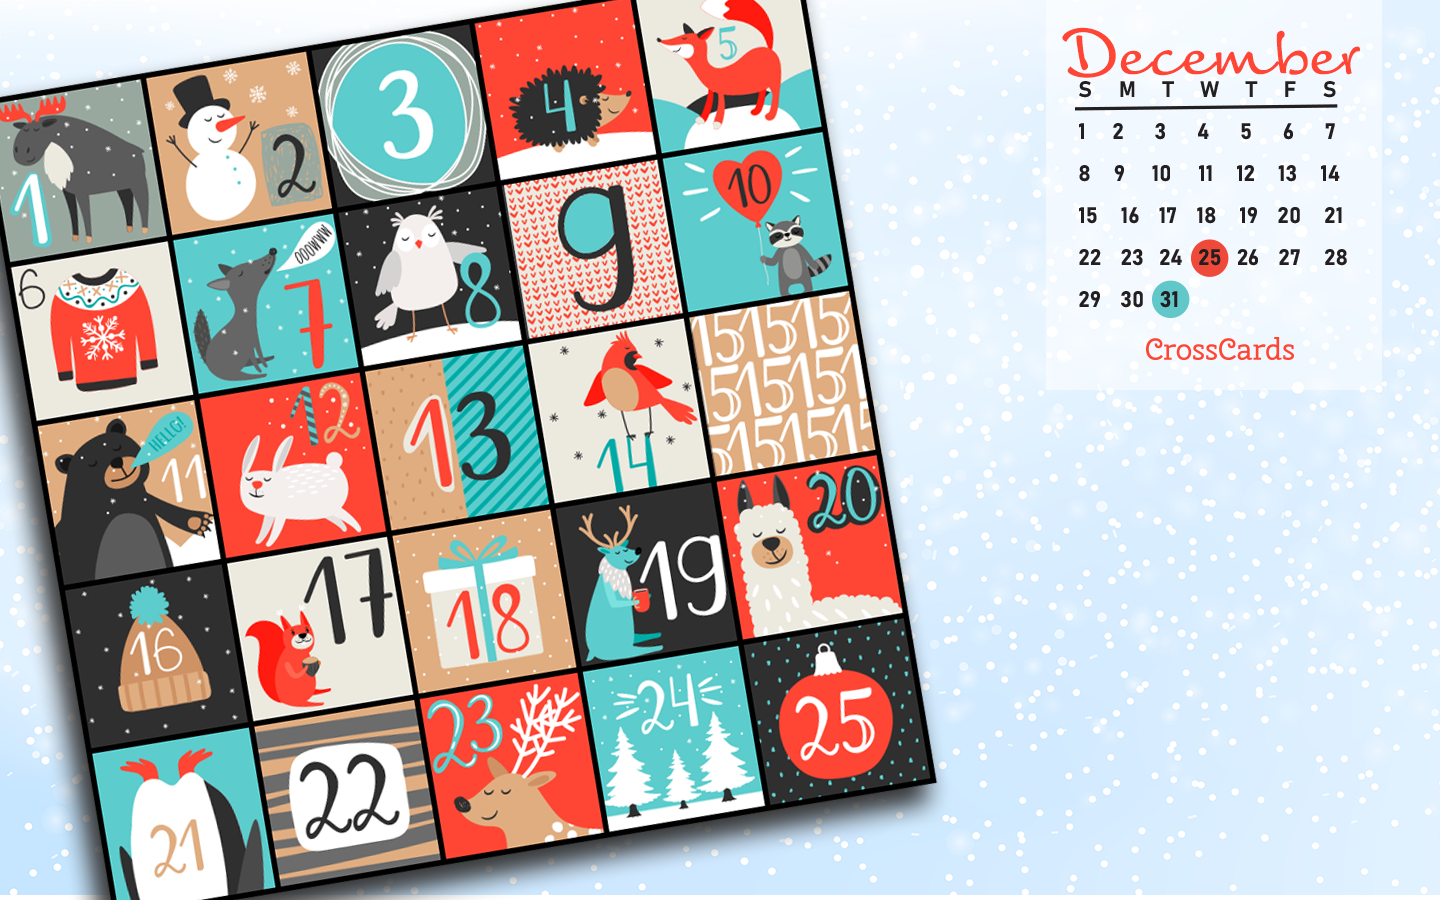 December 2019 - Advent Calendar ecard, online card